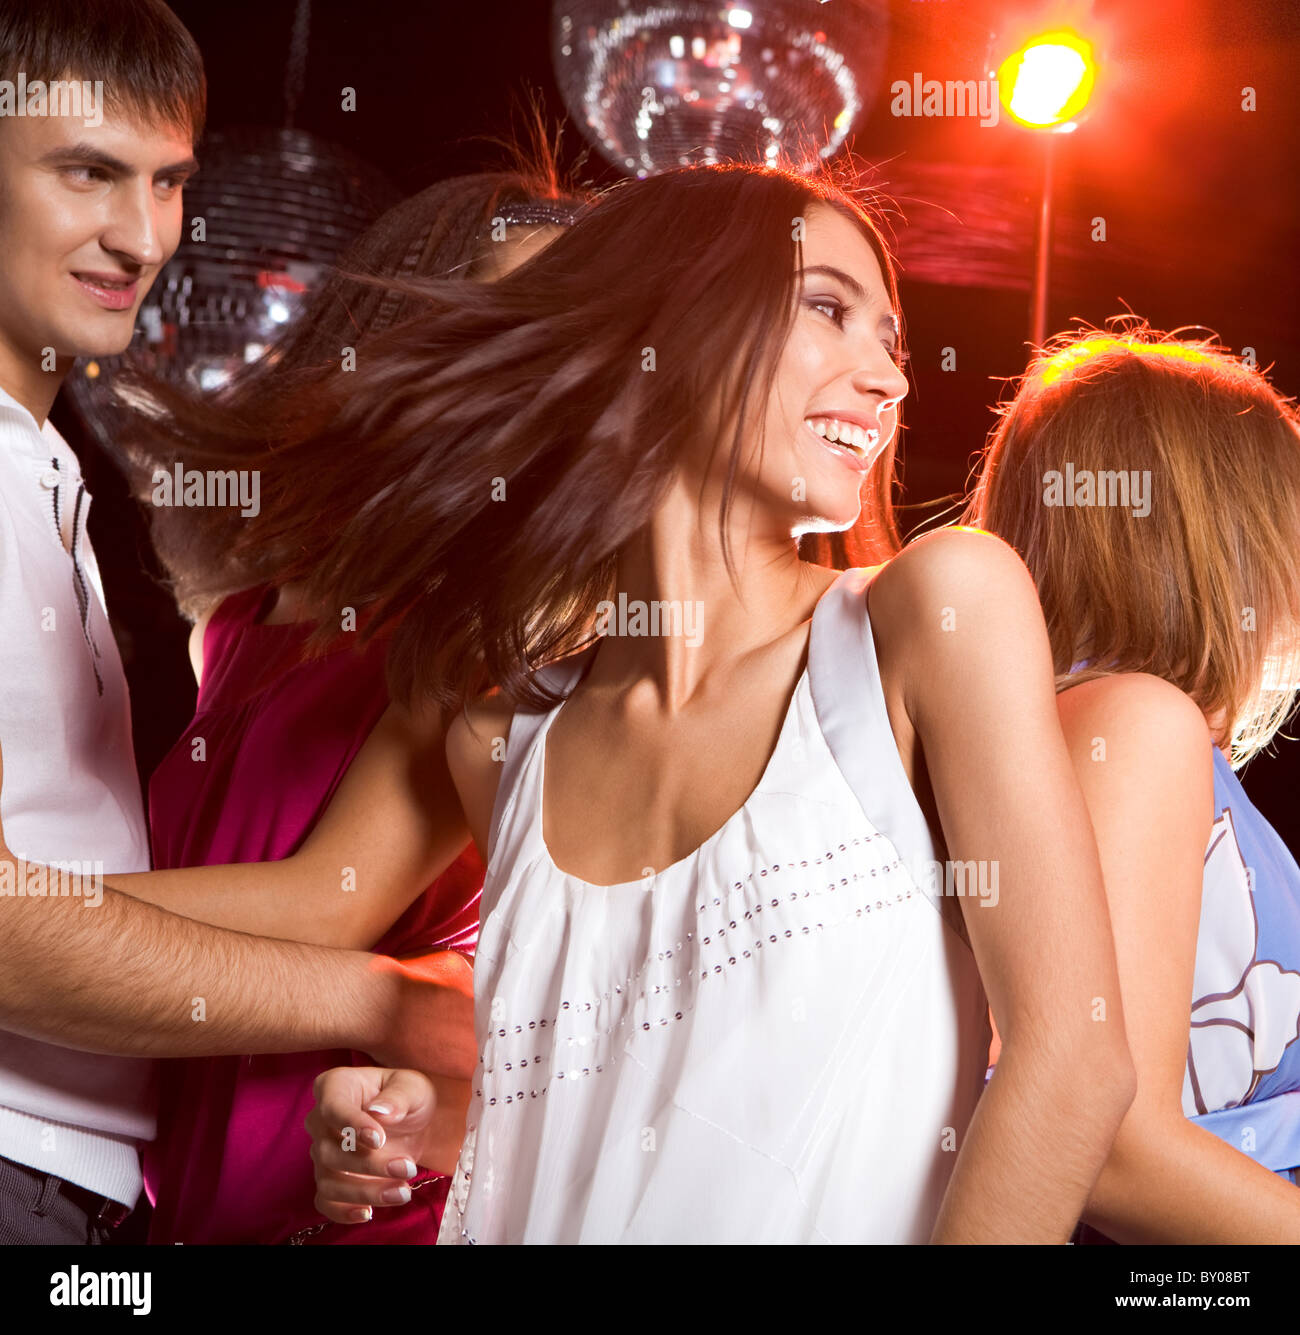 with girl a club? another Boyfriend danced in